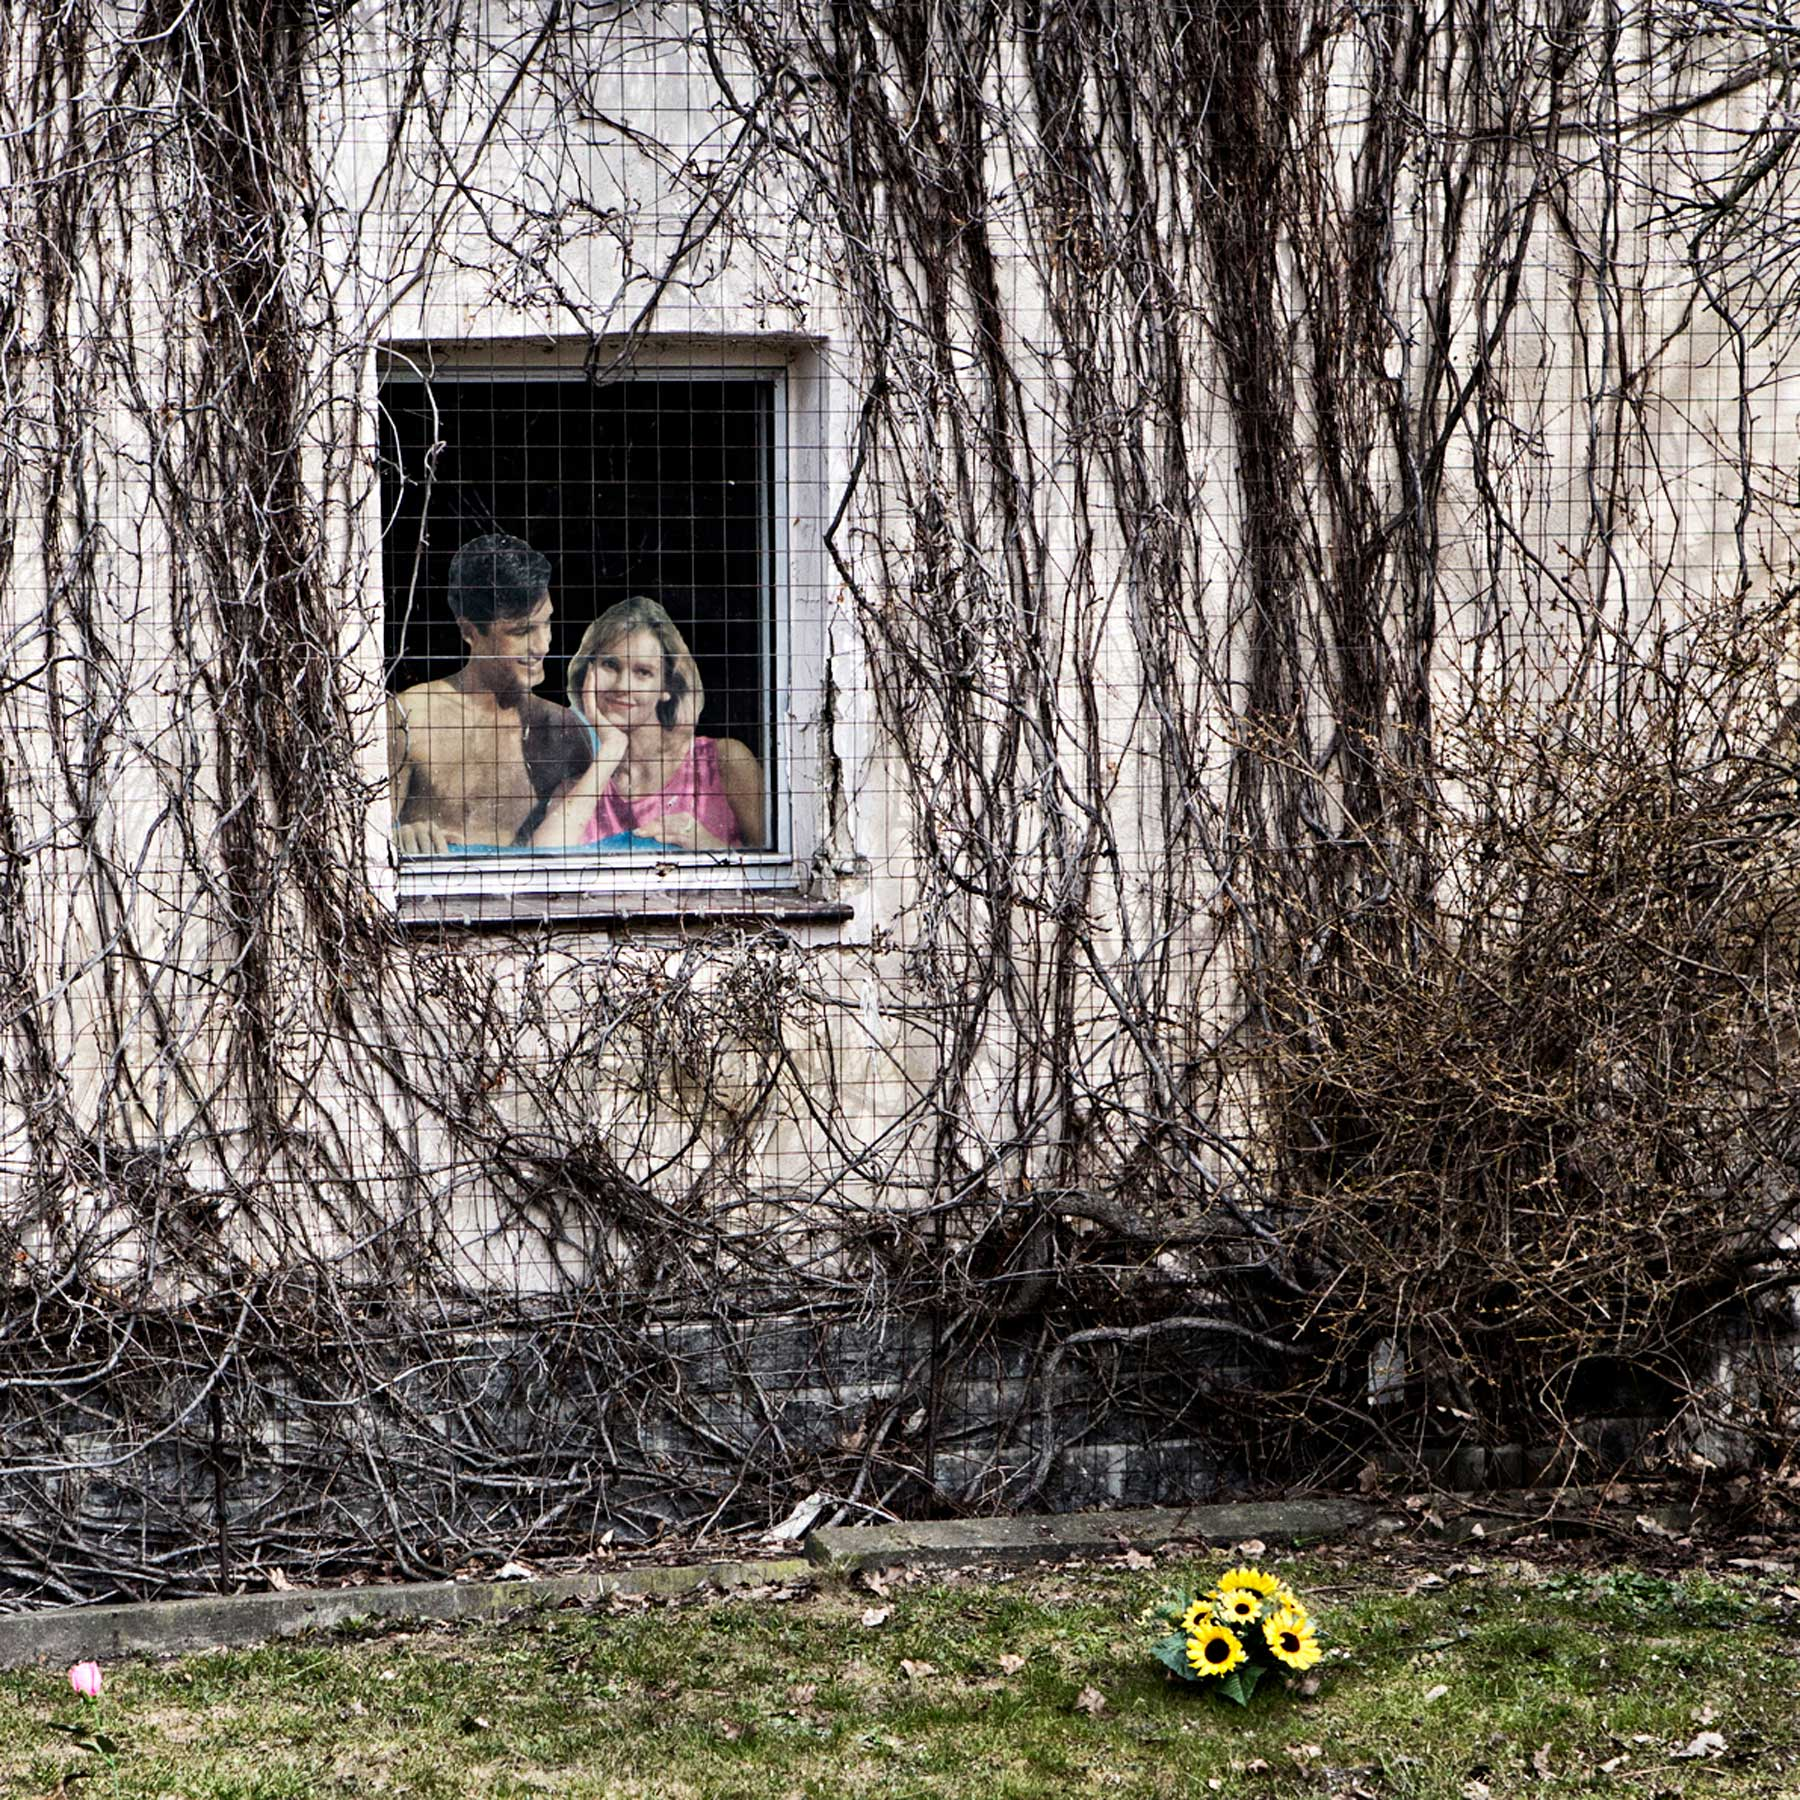 A cardboard cutout sits in the window of a home in a village on the outskirts of Hoyerswerda. The village is scheduled to be demolished so that the mining company, Vattenfall, can begin mining coal where the village stands.  The coal company has built a duplicate town 6 miles from the original town and use the cutouts to attract potential residence.